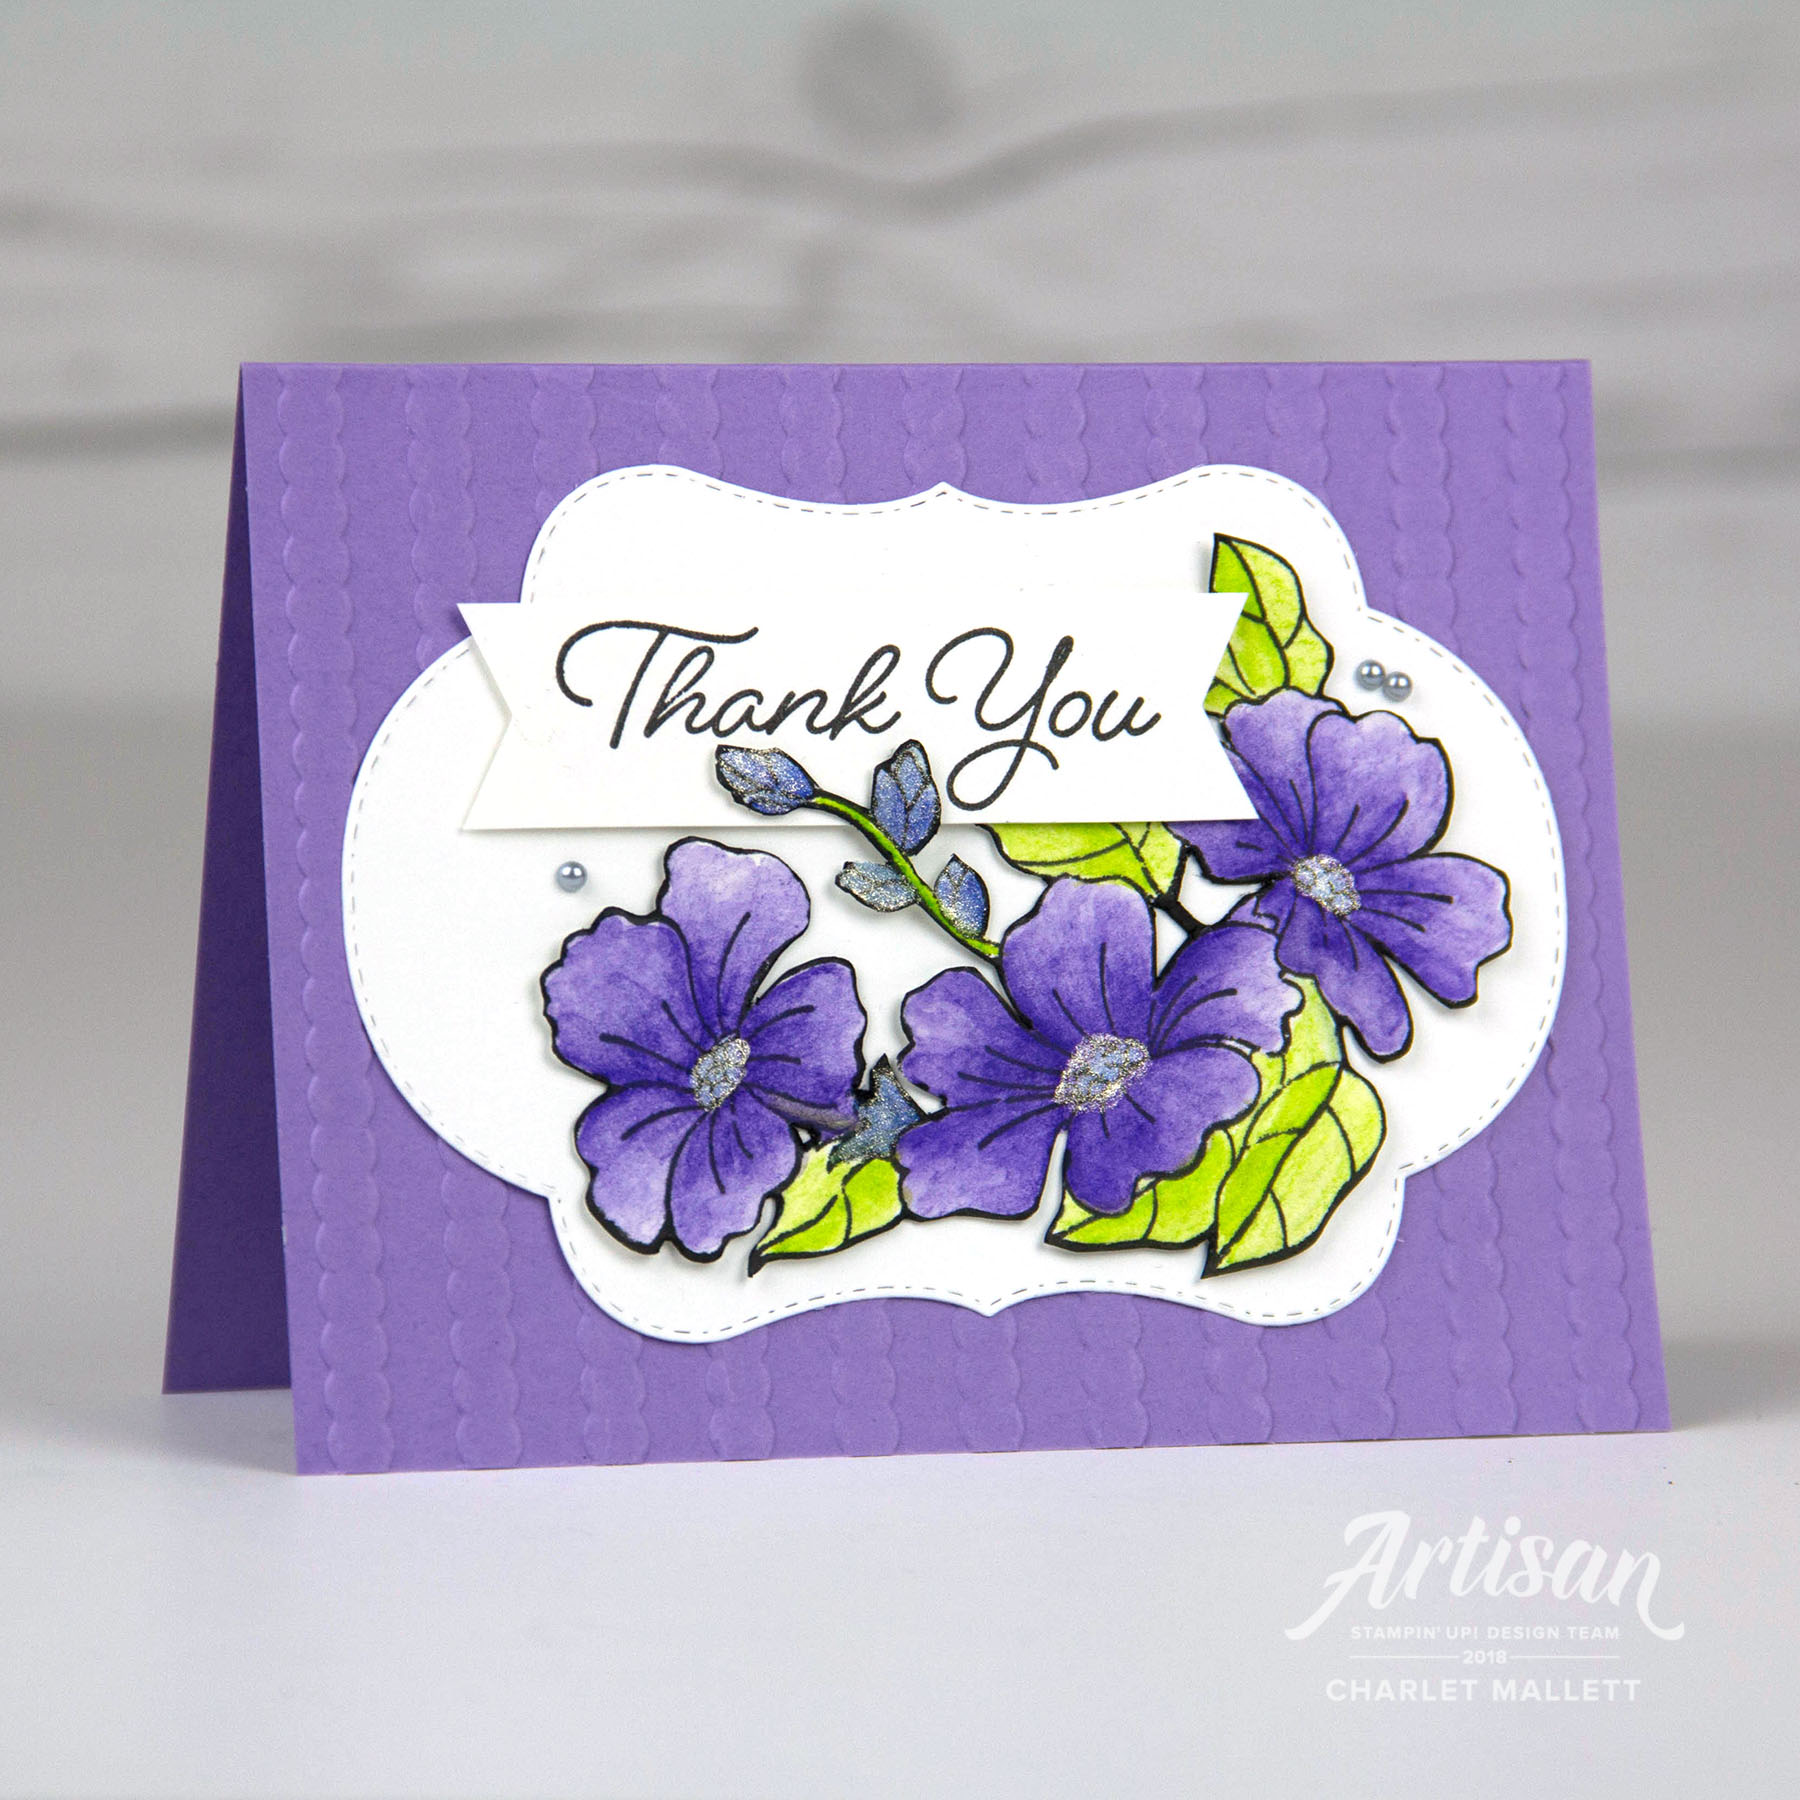 Thank You -Blended Seasons card using Watercolor pencils. Charlet Mallett - Stampin' Up!